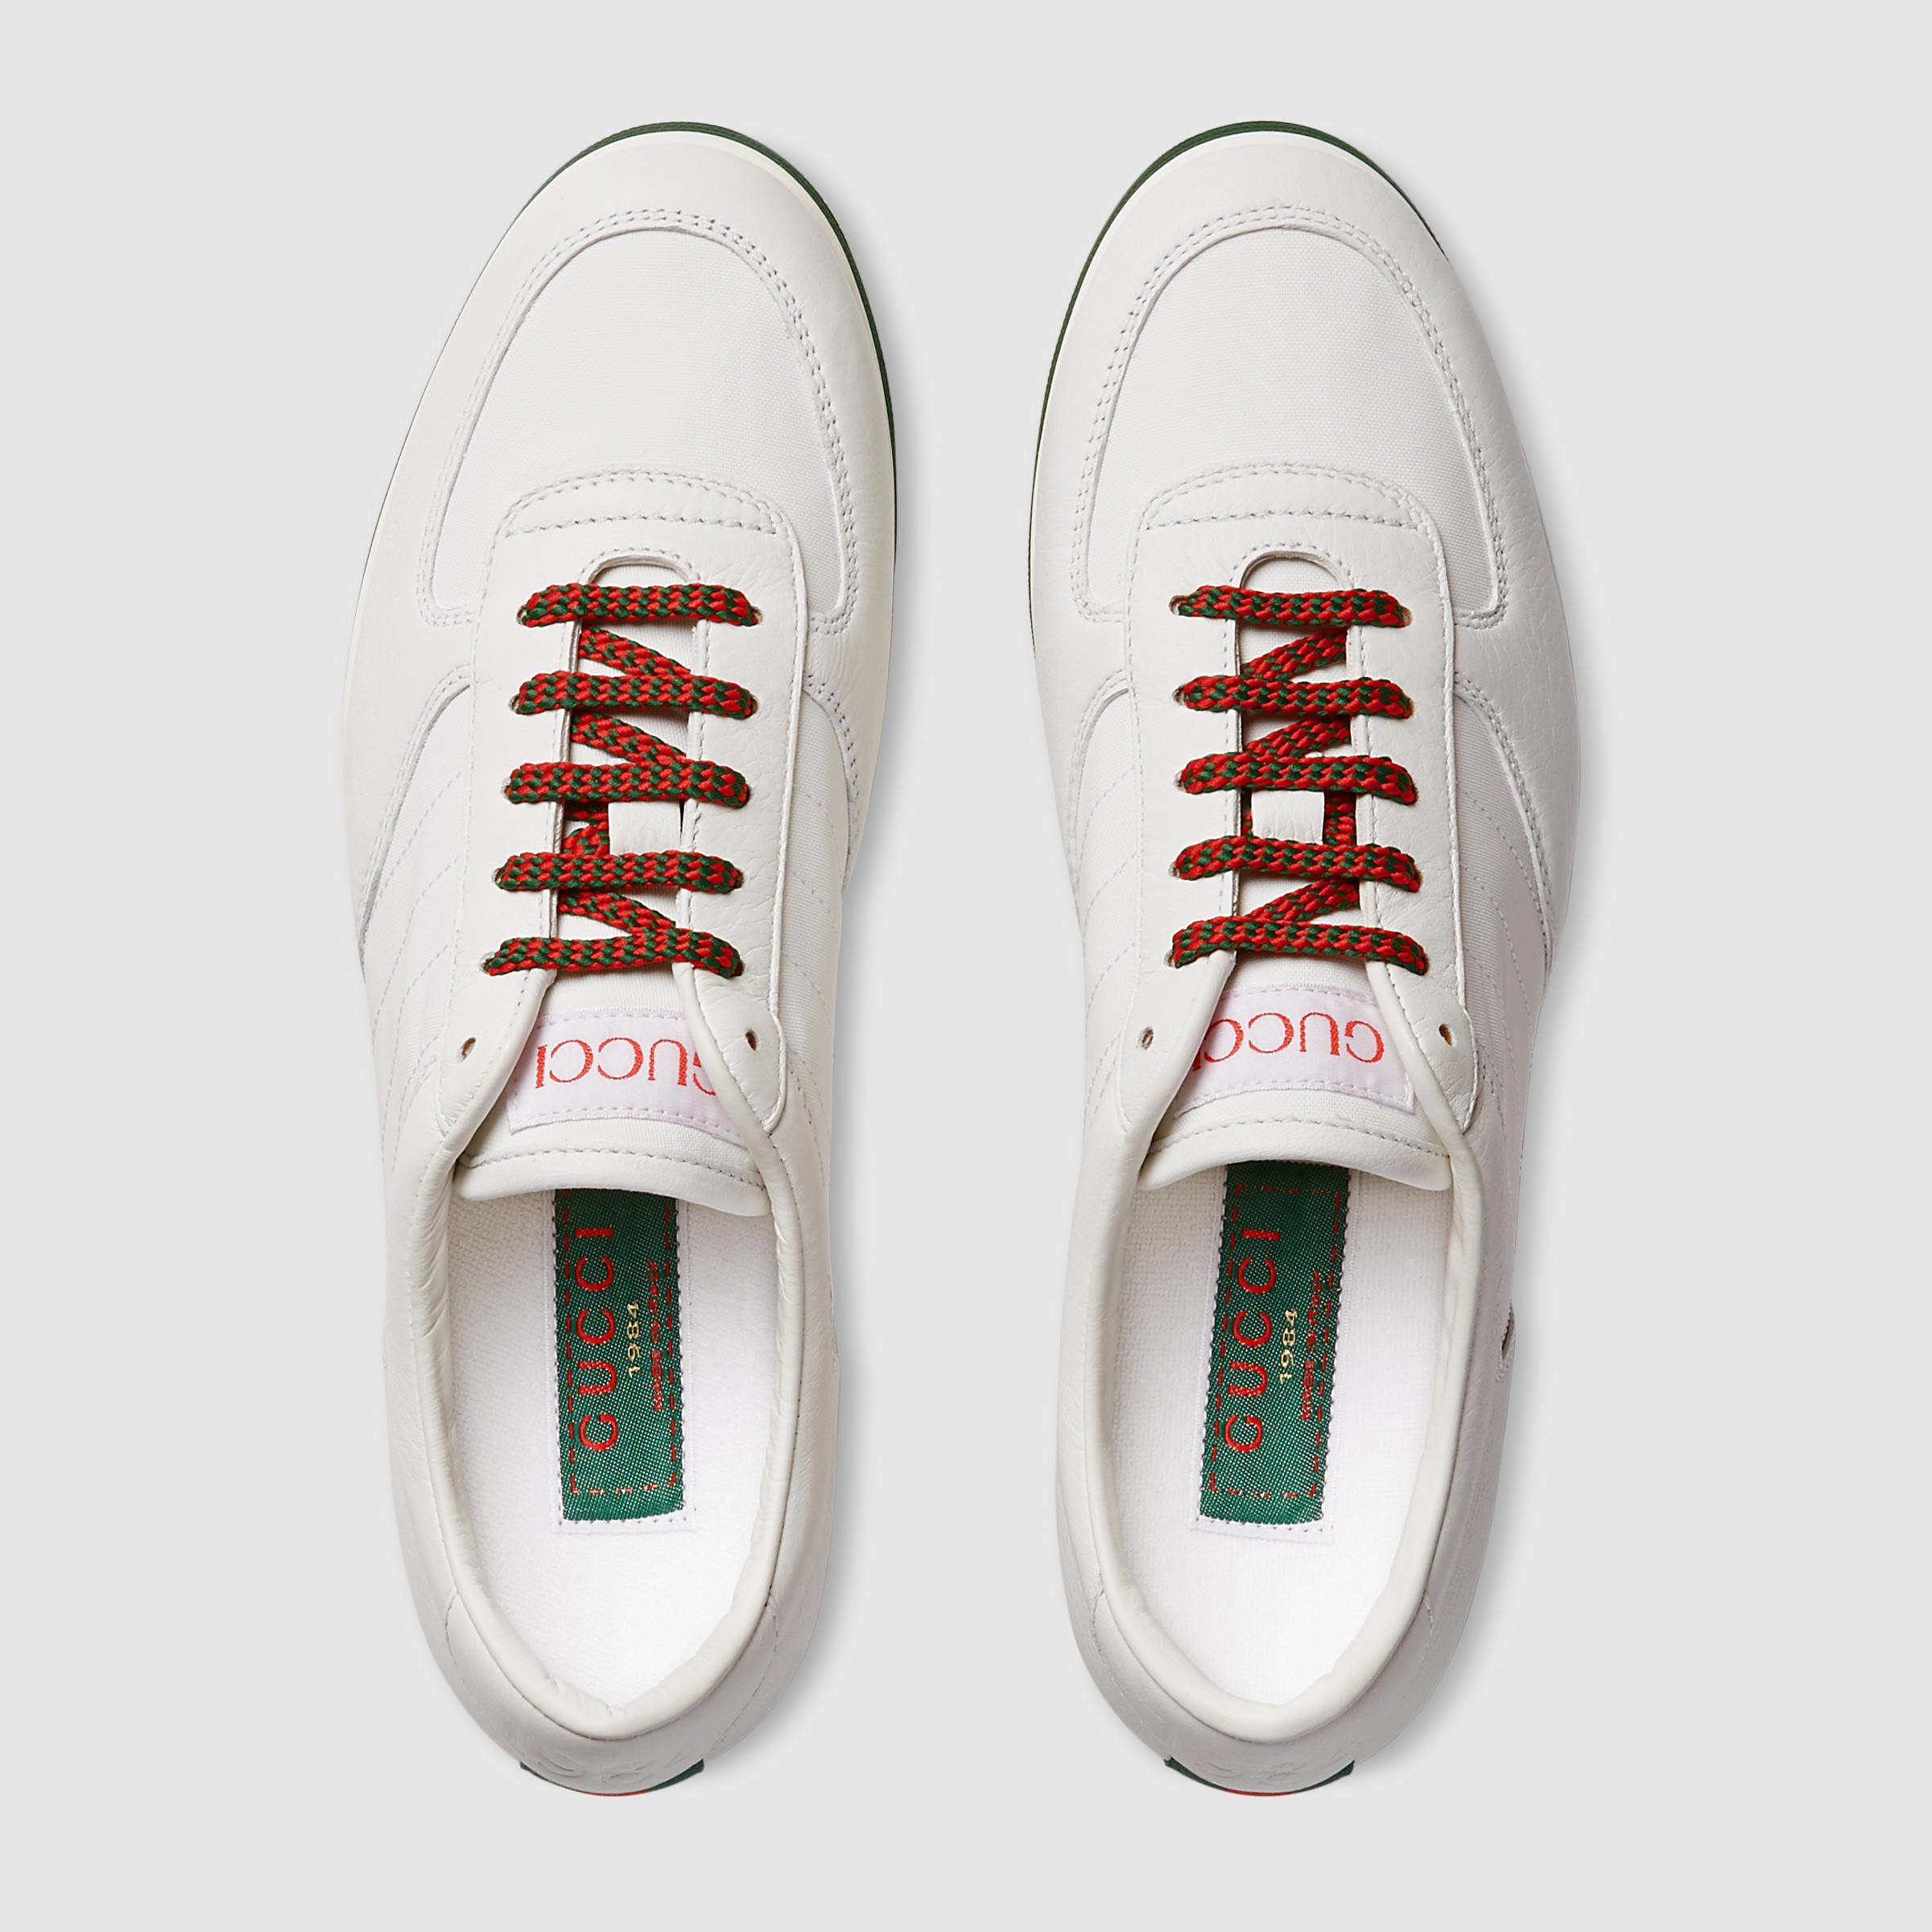 gucci 1984 sneakers. gallery gucci 1984 sneakers